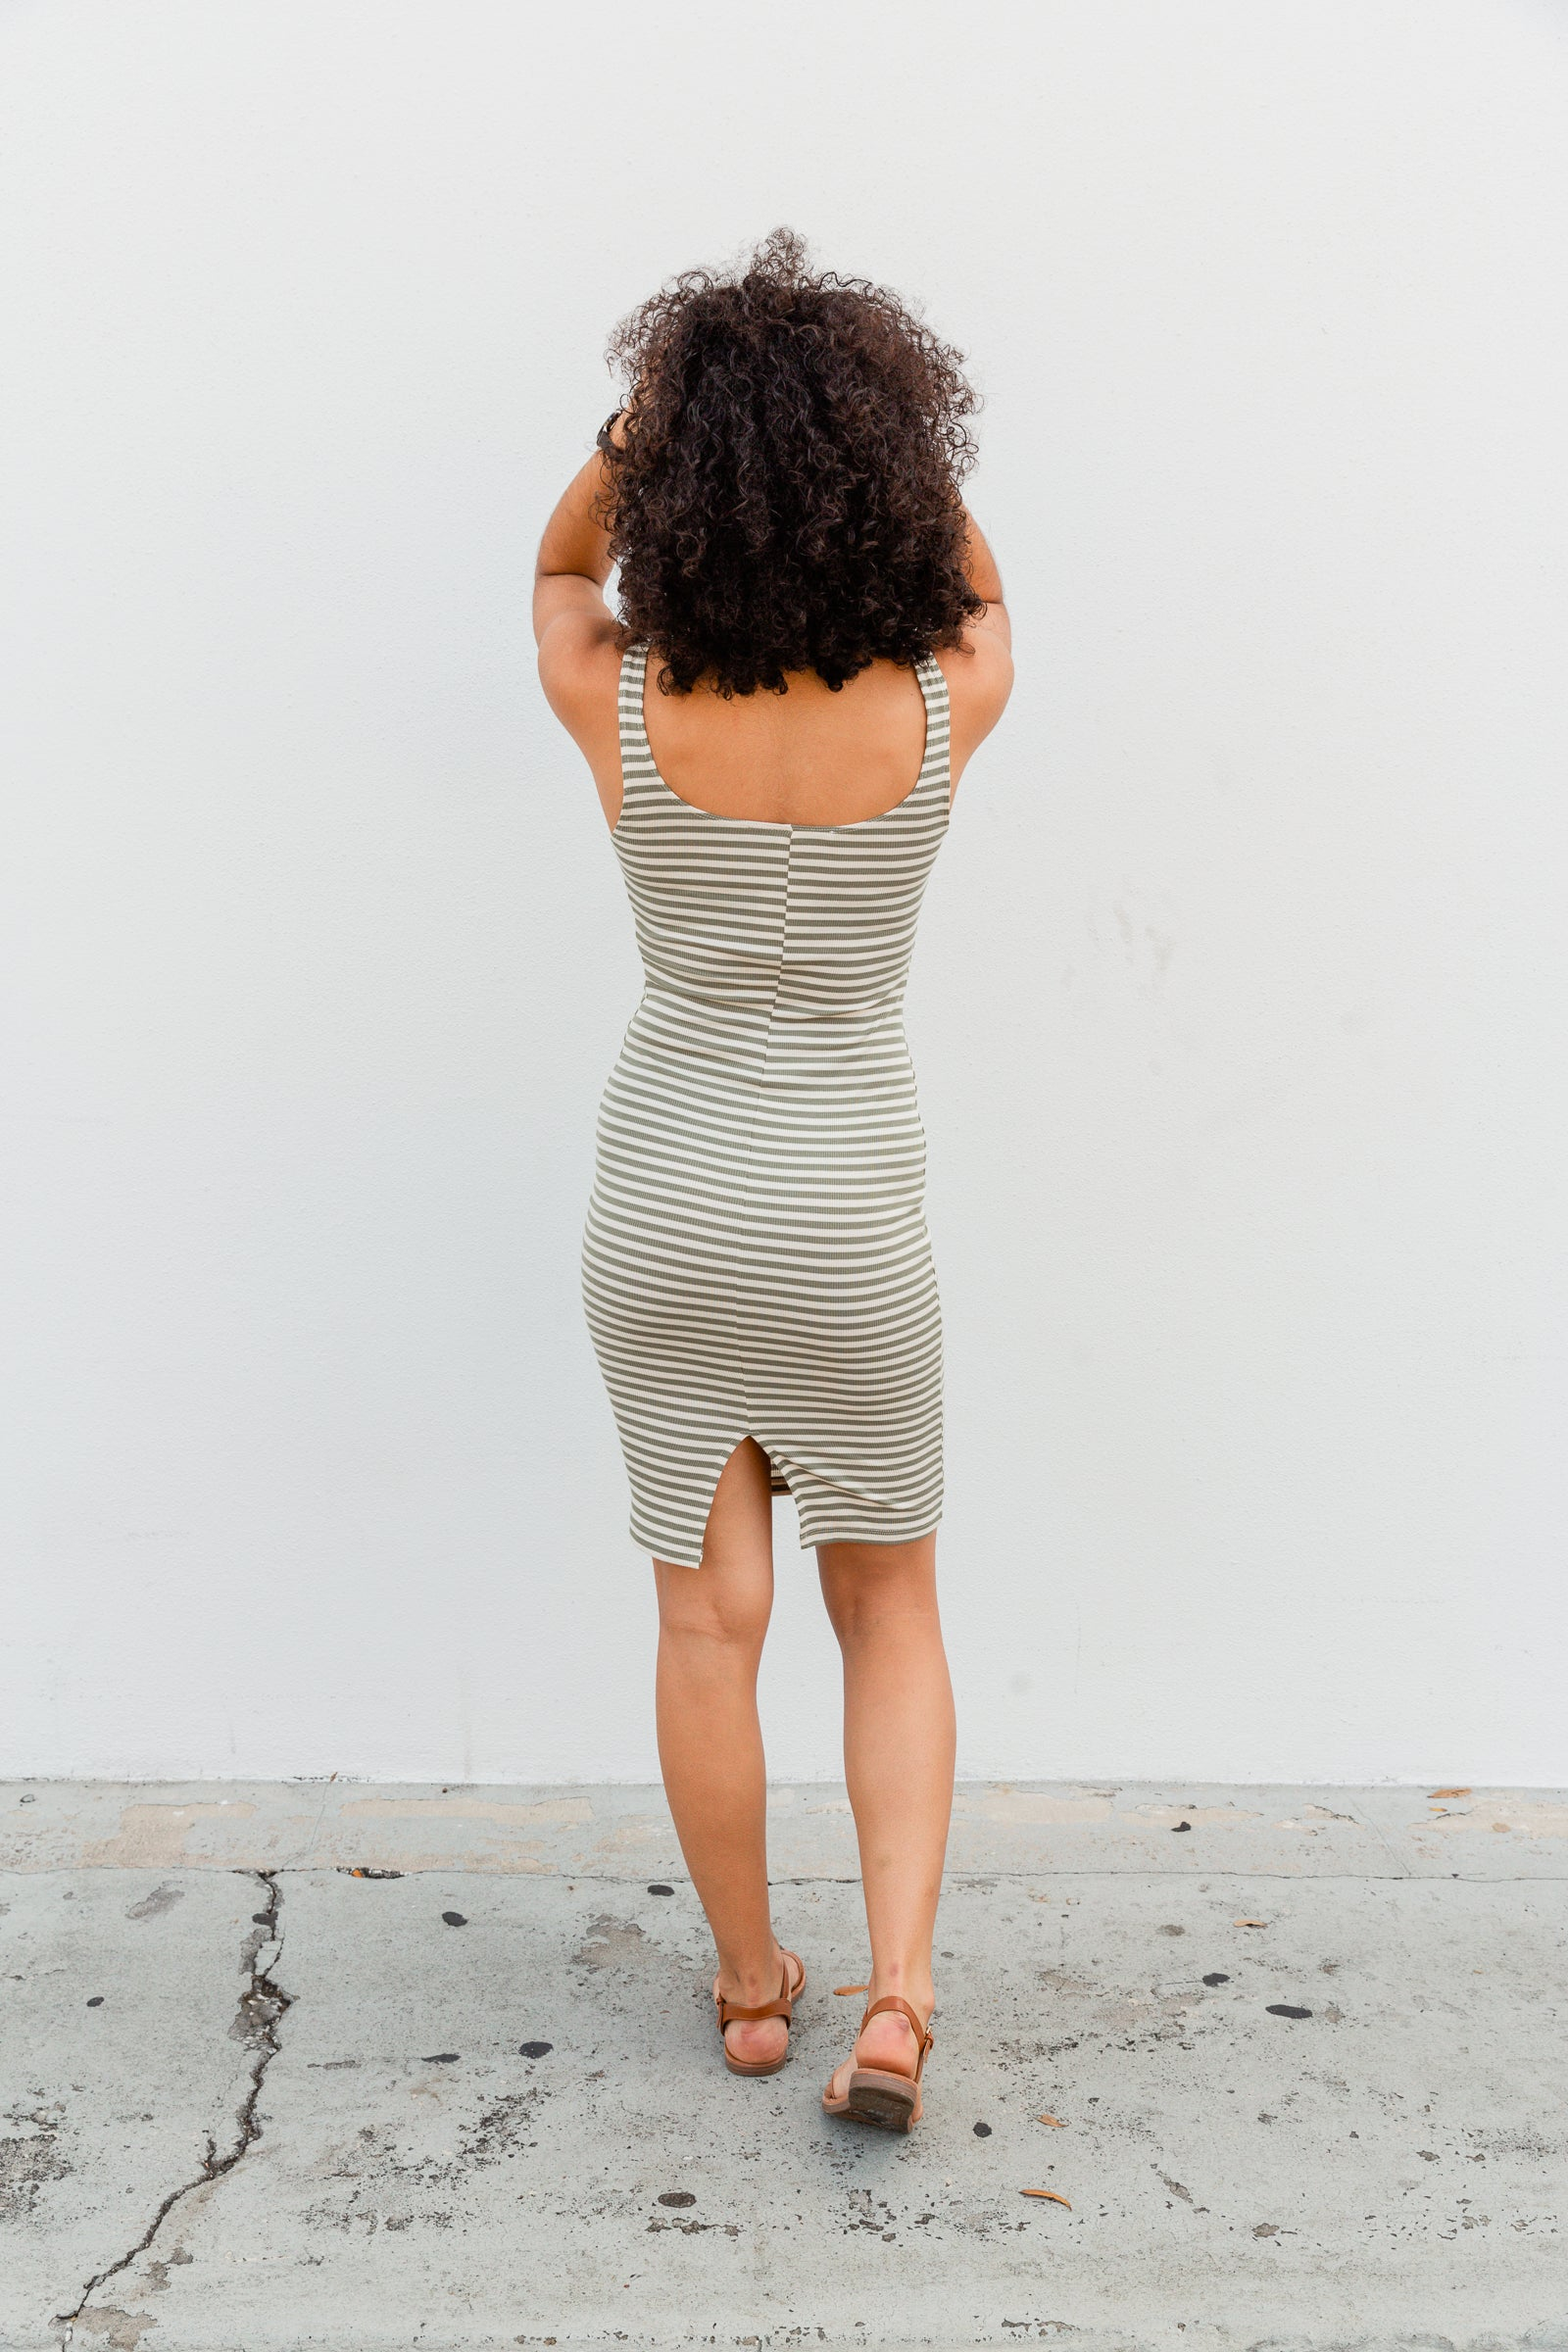 Olive and cream stripes go across the fabric of this ribbed dress. Medium straps attach to a square neckline on a fitted and hip-hugging dress.